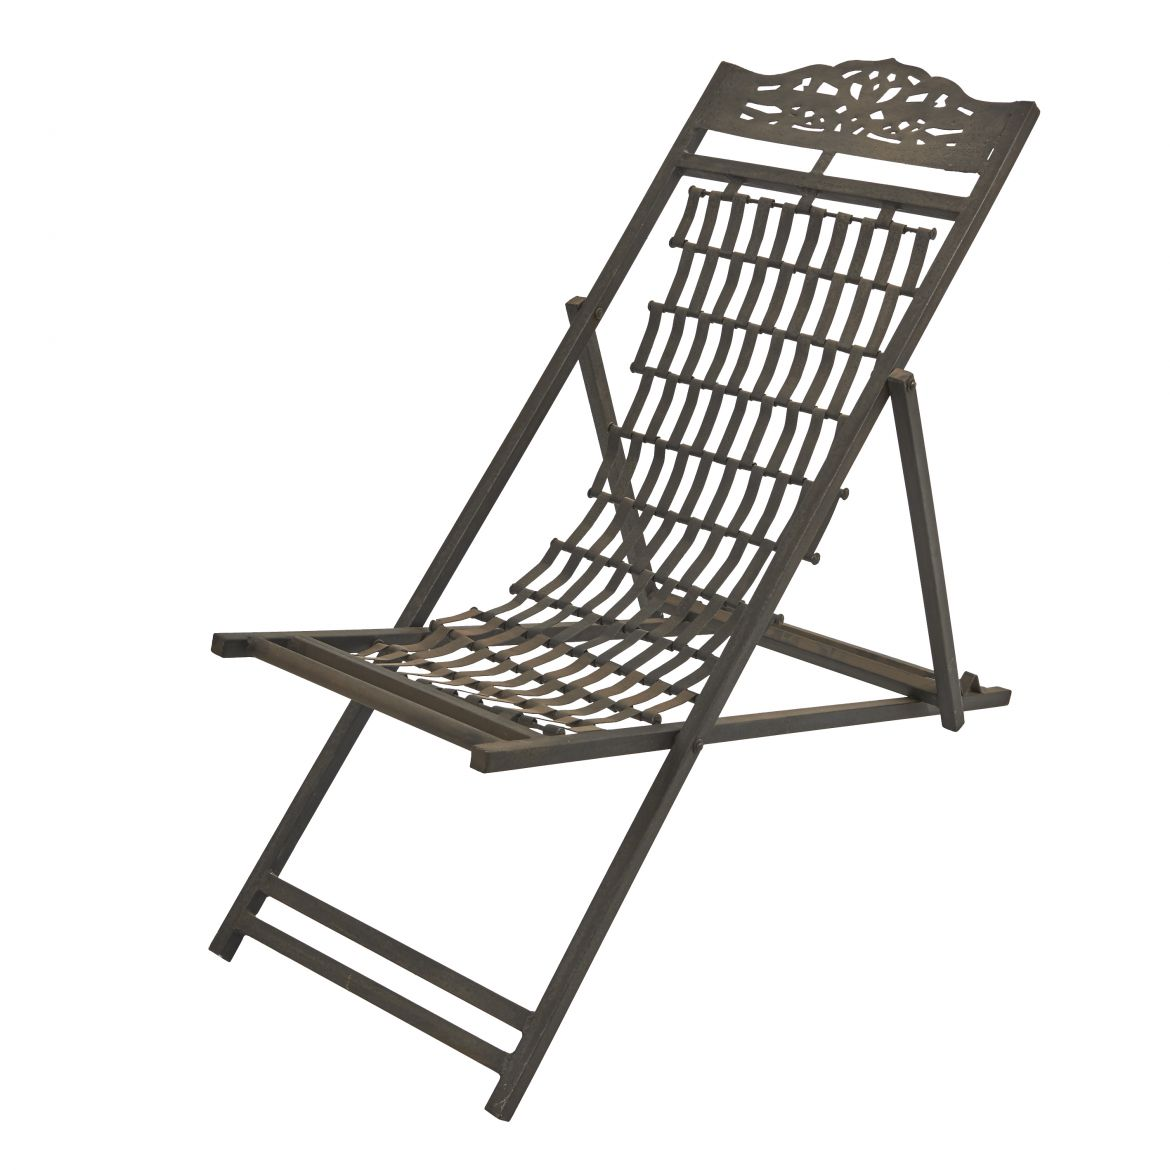 African Metal Lounger Chair